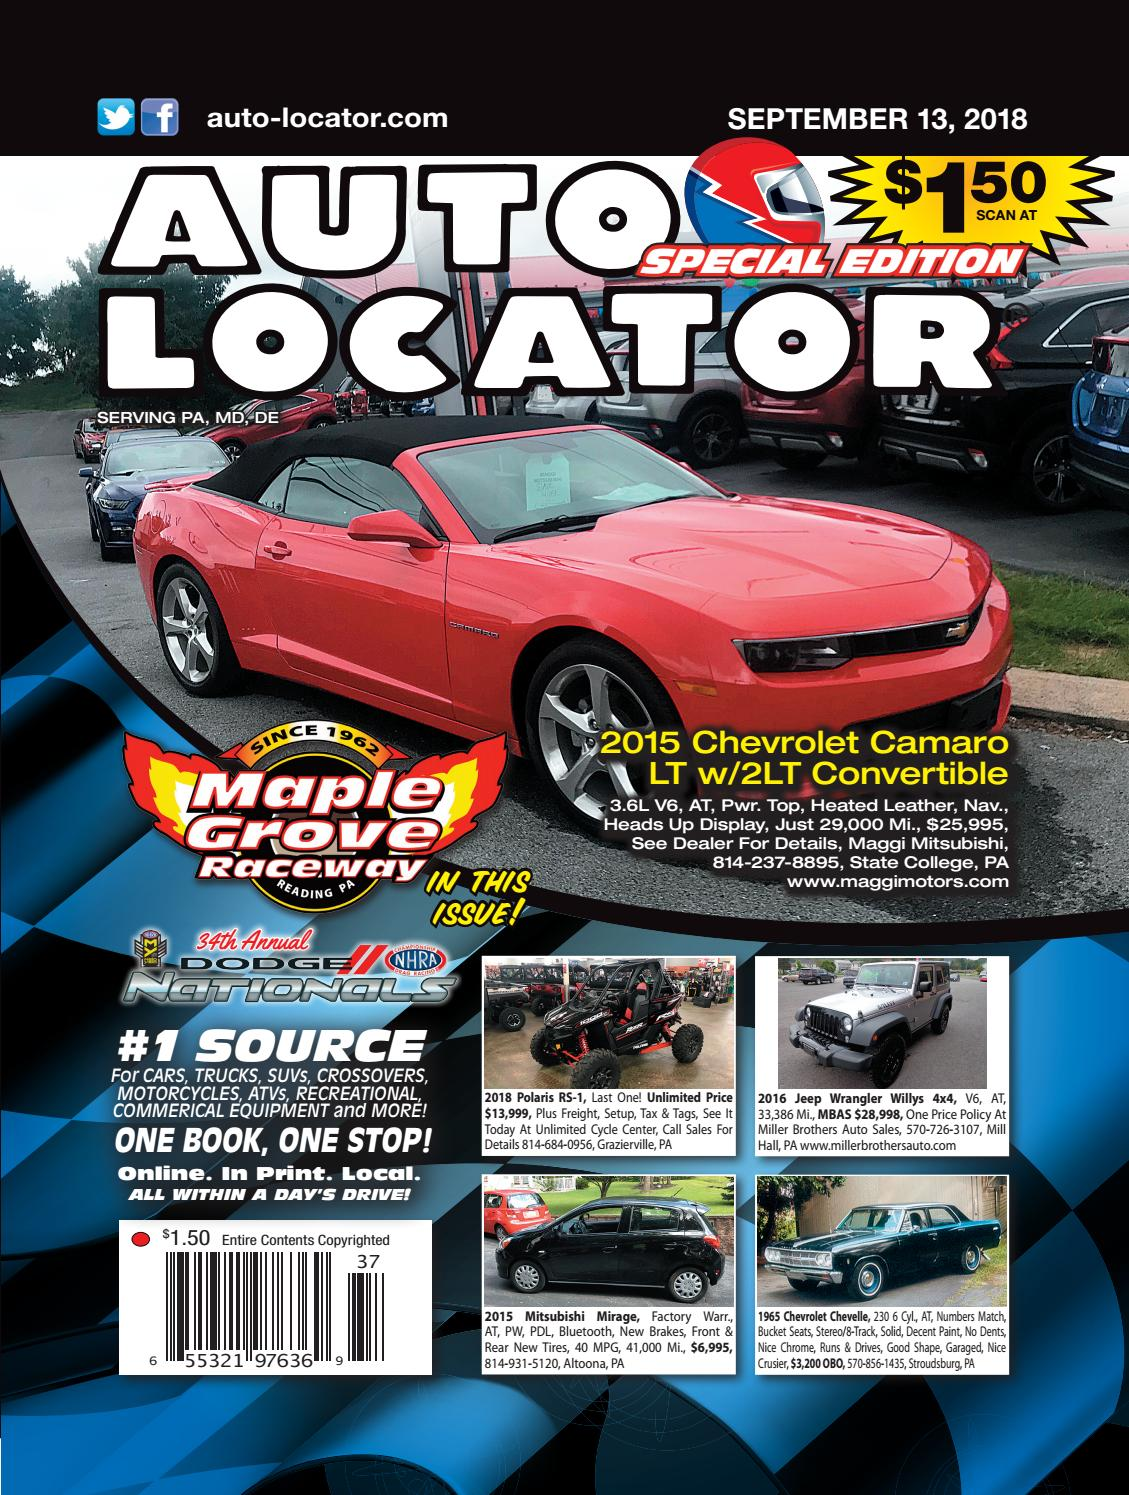 09 13 18 auto locator red edition by auto locator and auto09 13 18 auto locator red edition by auto locator and auto connection issuu